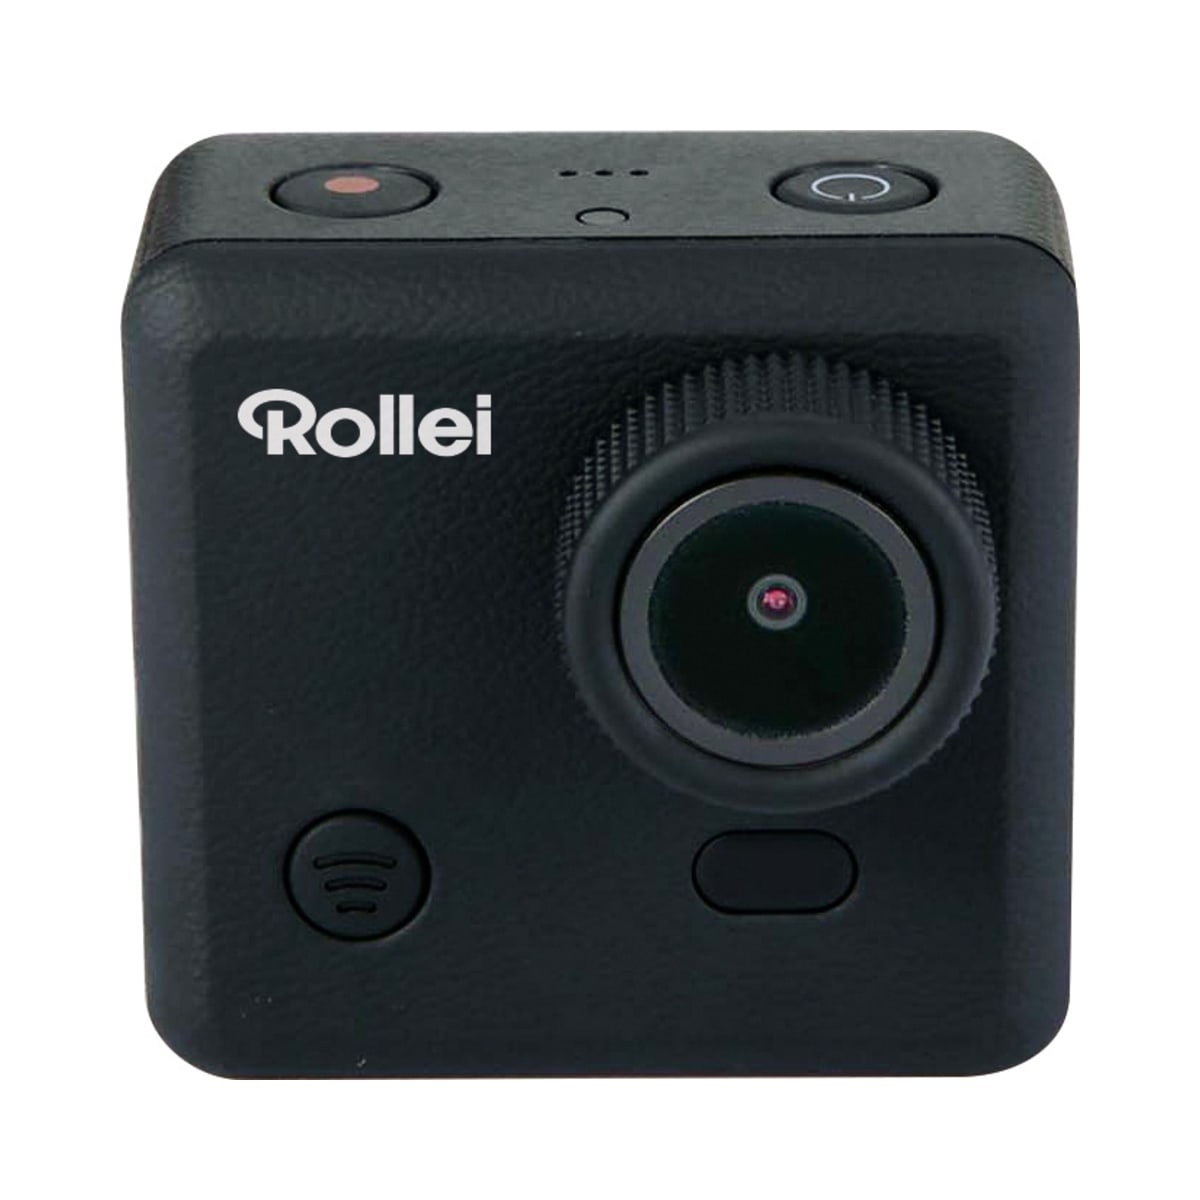 Rollei Actioncam 410 4MP WLAN Full-HD für 139,00 Euro